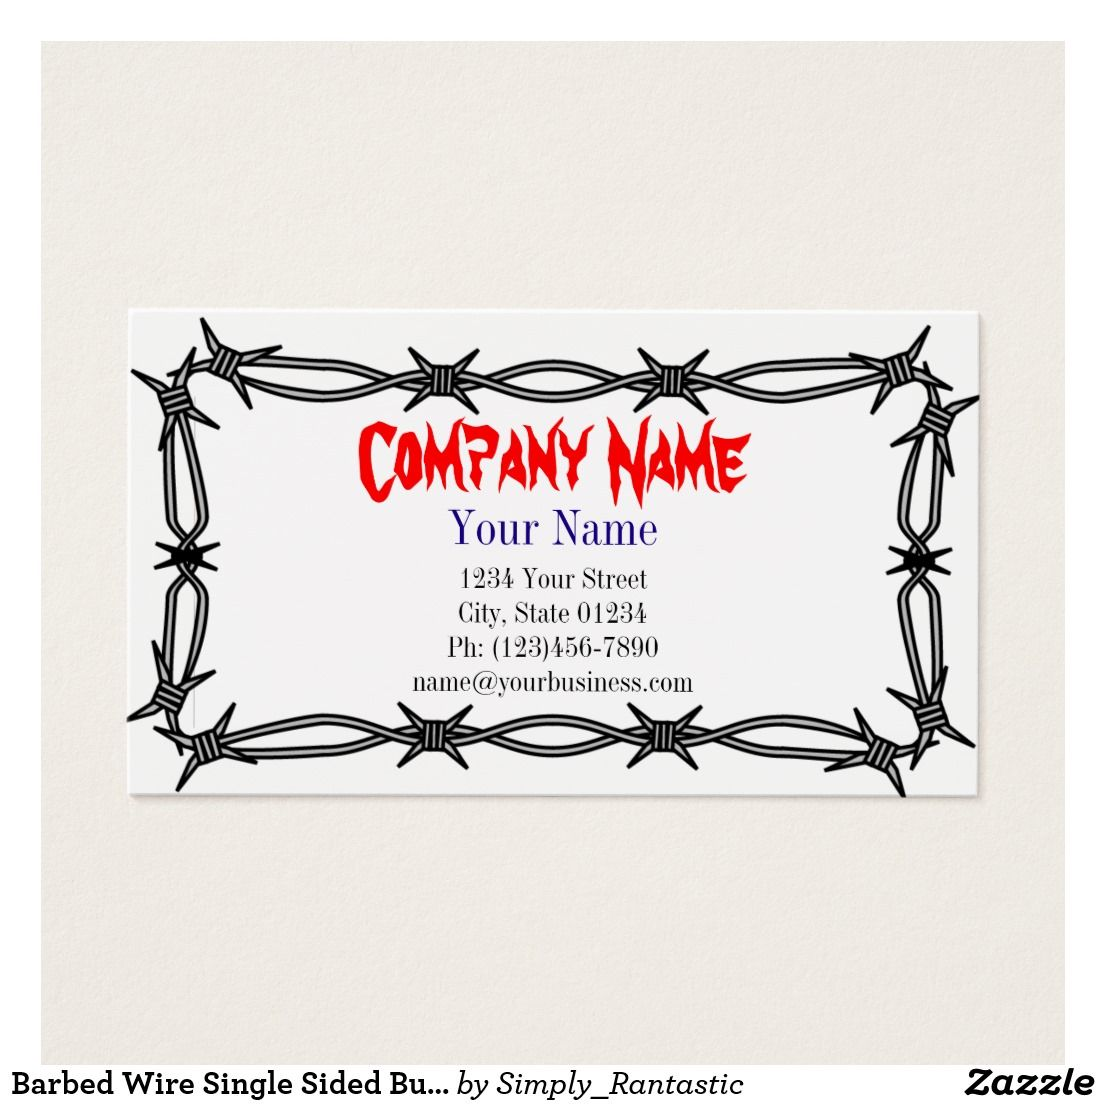 Barbed wire single sided business card template business cards barbed wire single sided business card template fbccfo Image collections